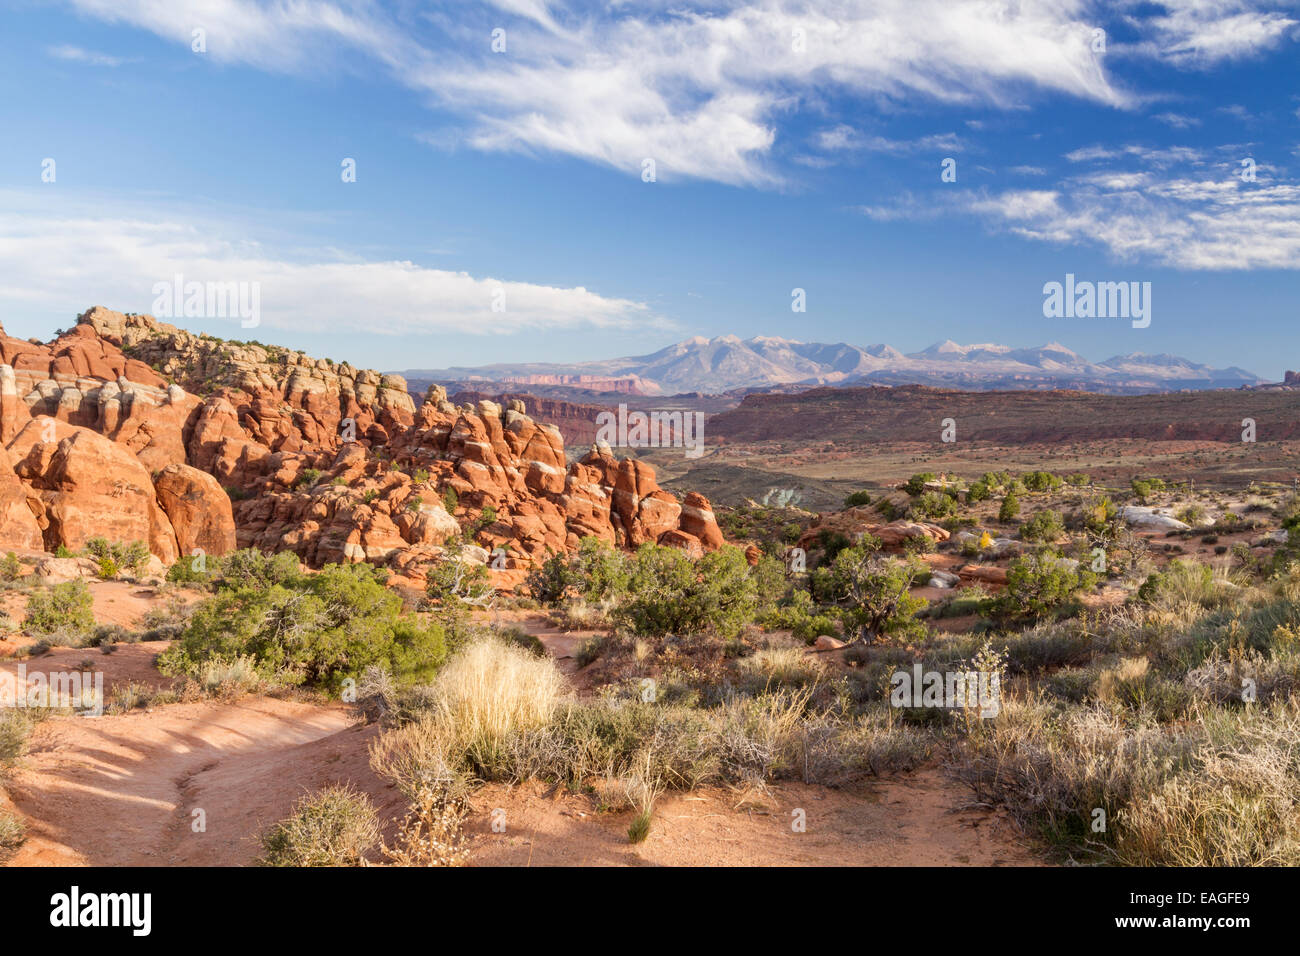 The red rock fins of Fiery Furnace in Arches National Park in Utah, with the La Sal Mountains in the background. - Stock Image